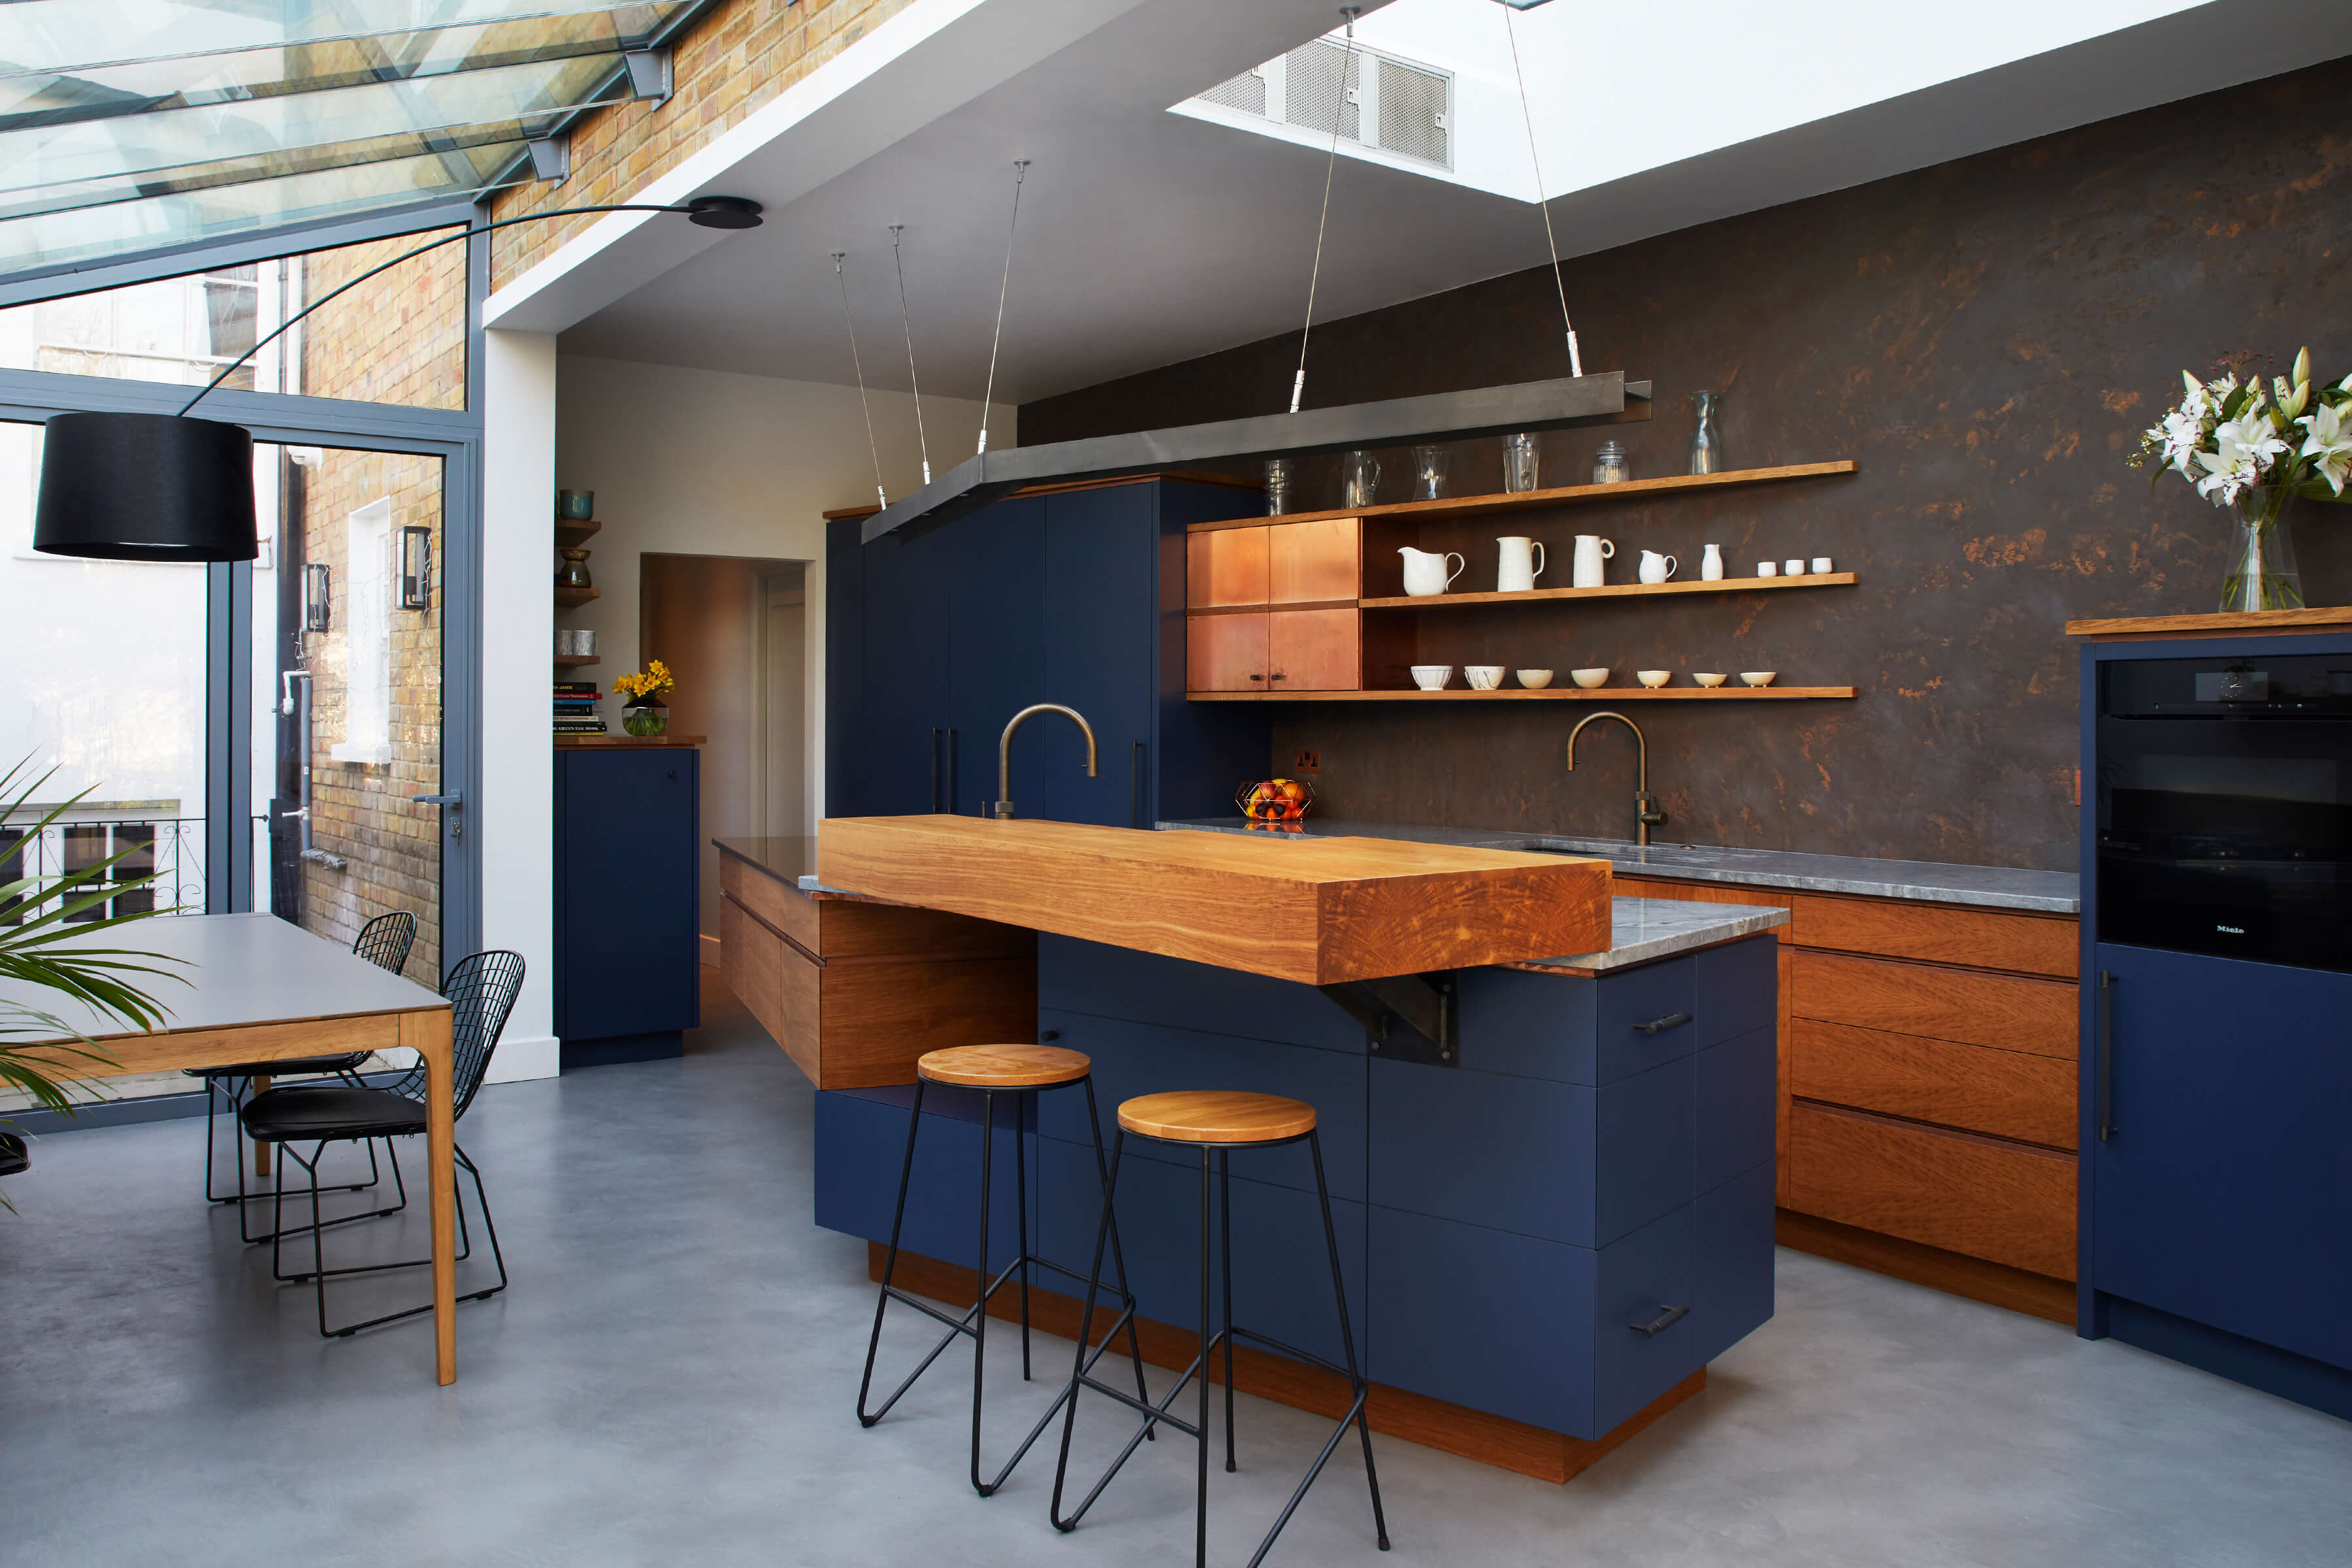 A fun family kitchen in London townhouse designed with copper and concrete details